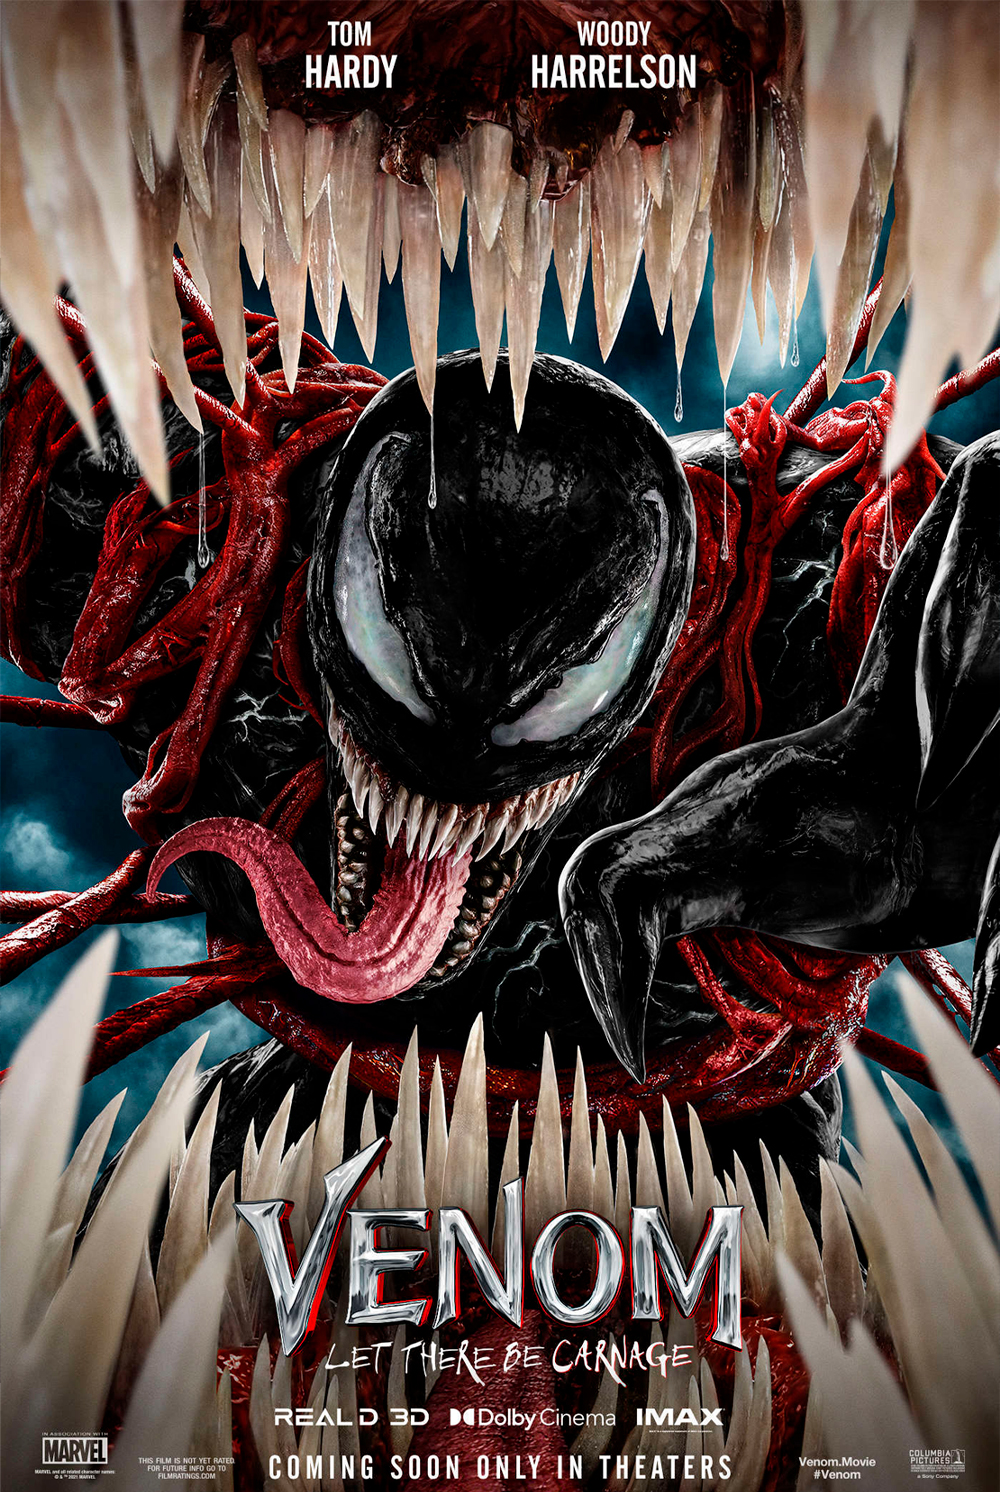 Venom: Let There Be Carnage (2021) movie poster